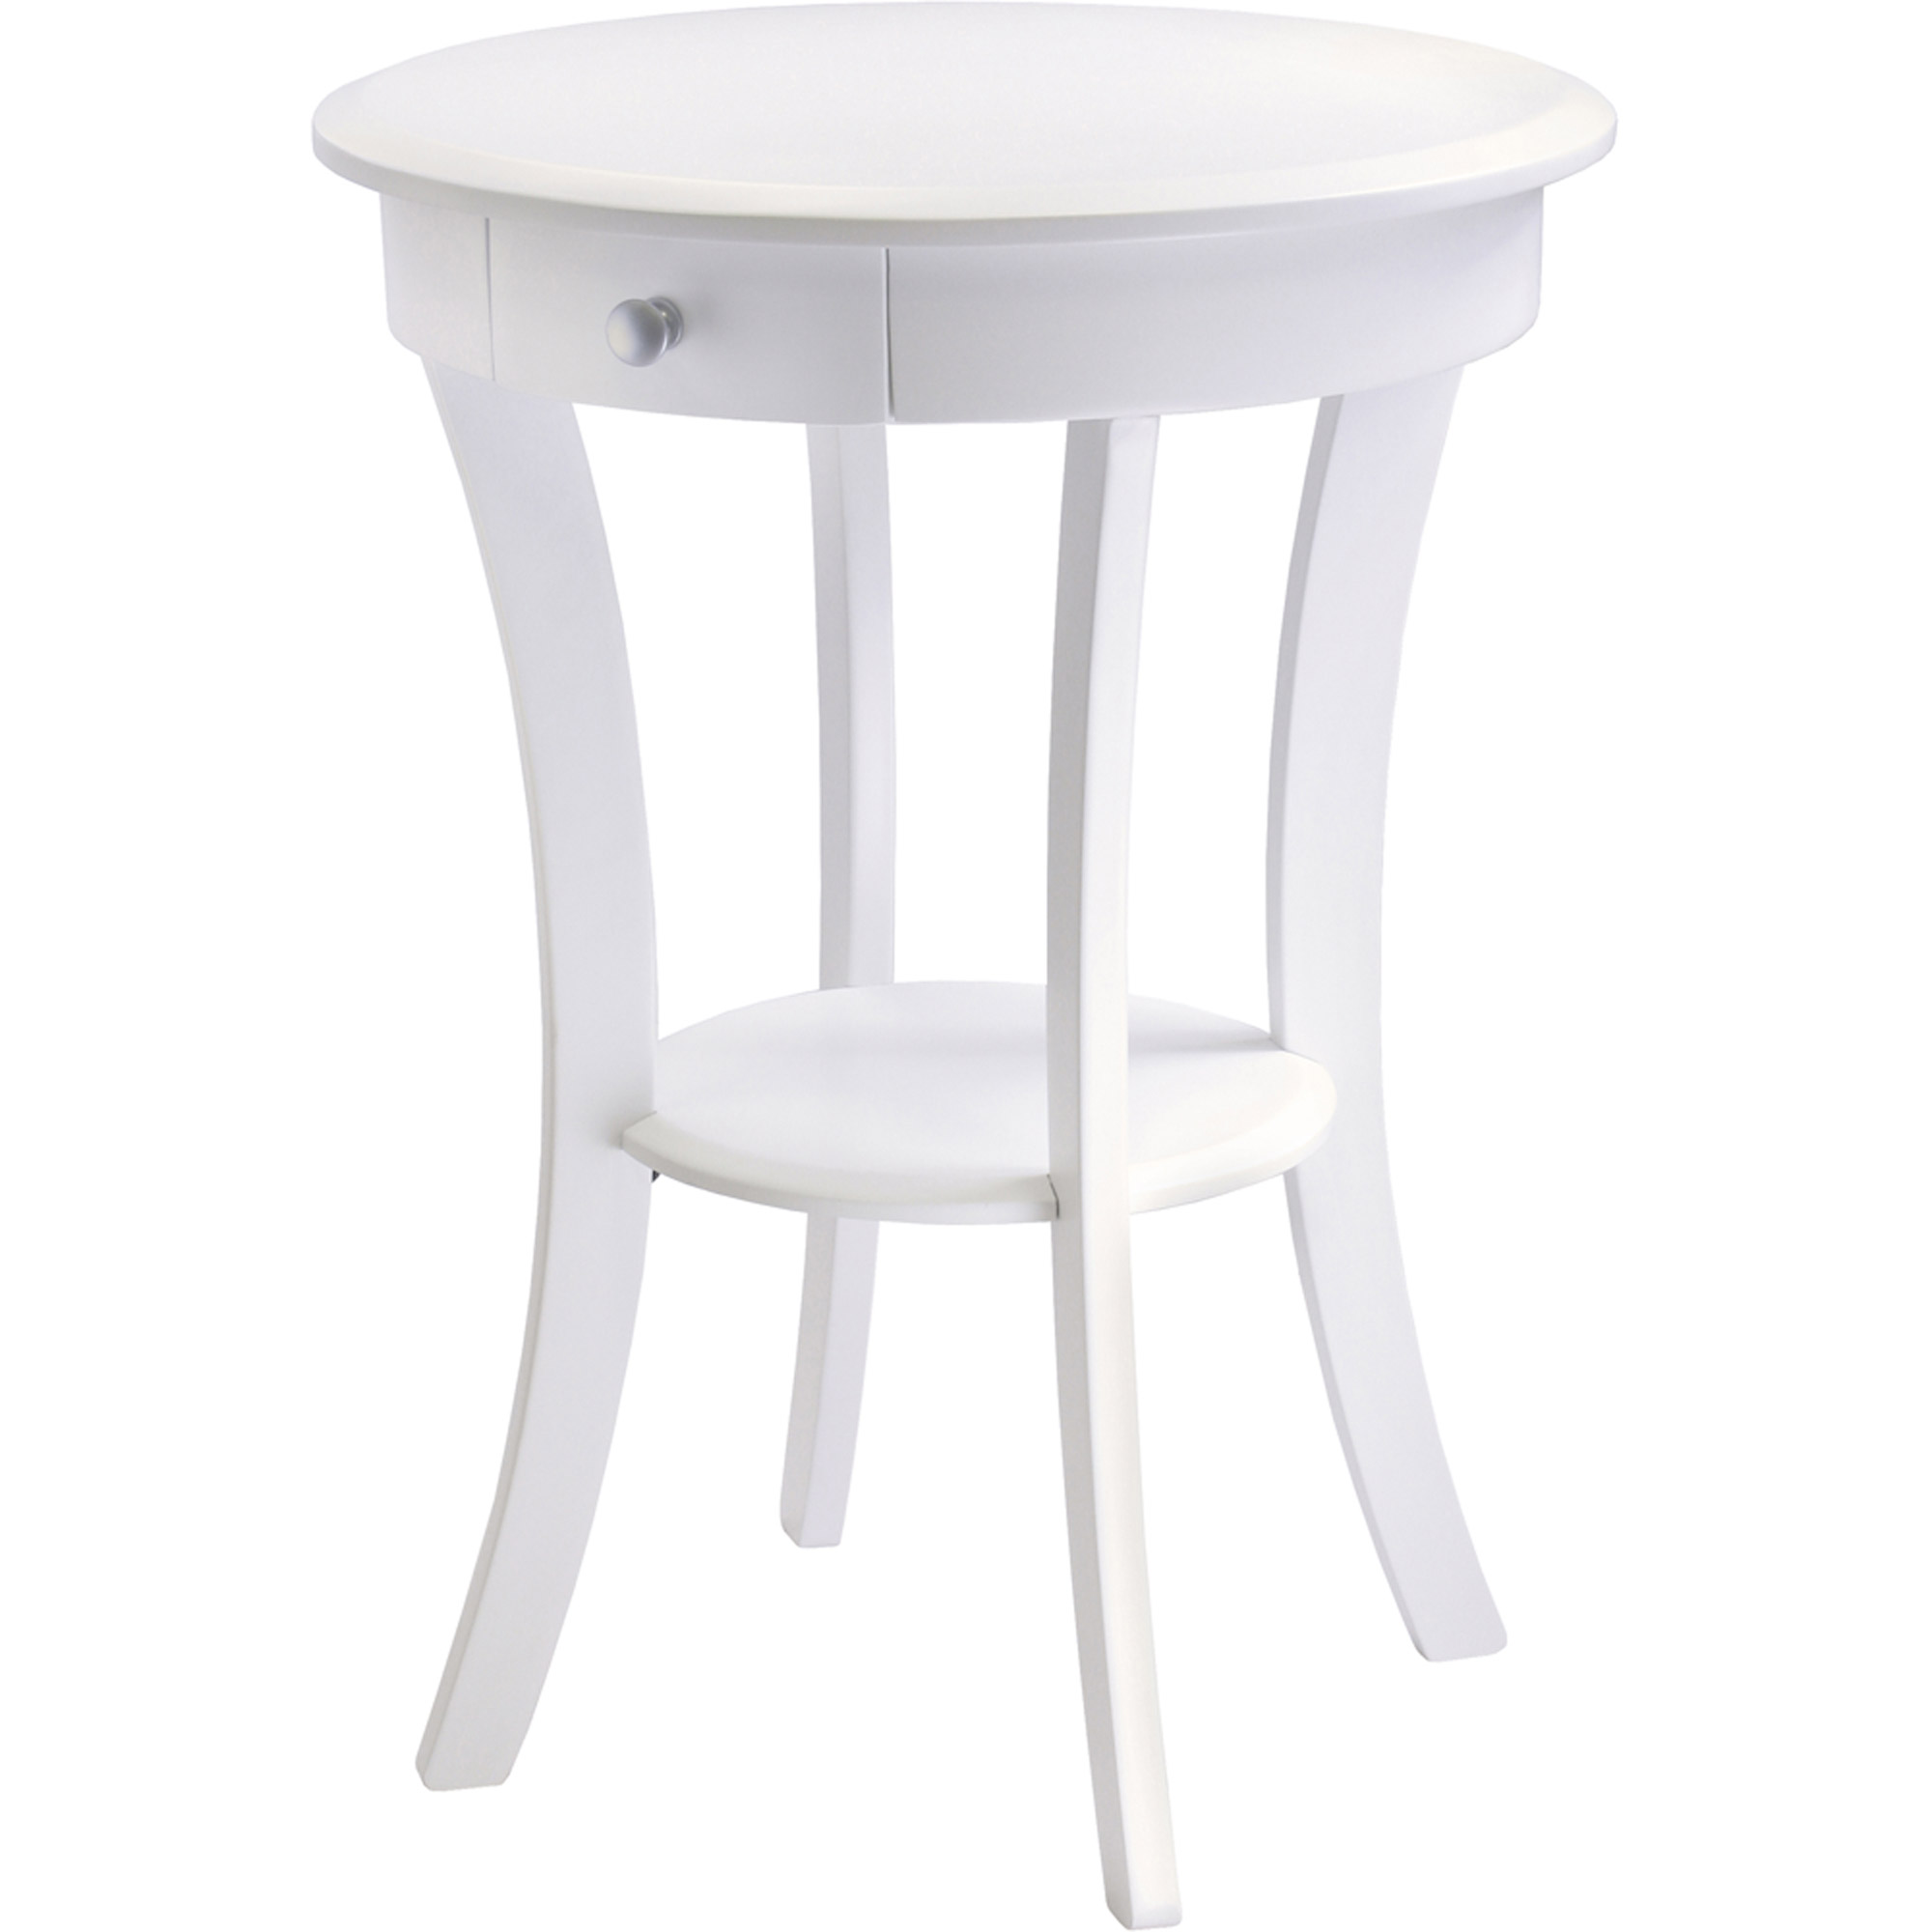 cool home round accent table small ideas wood covers side faux unfinished wooden white pedestal tablecloth cover decorating threshold for full size couches spaces gold lamp shades